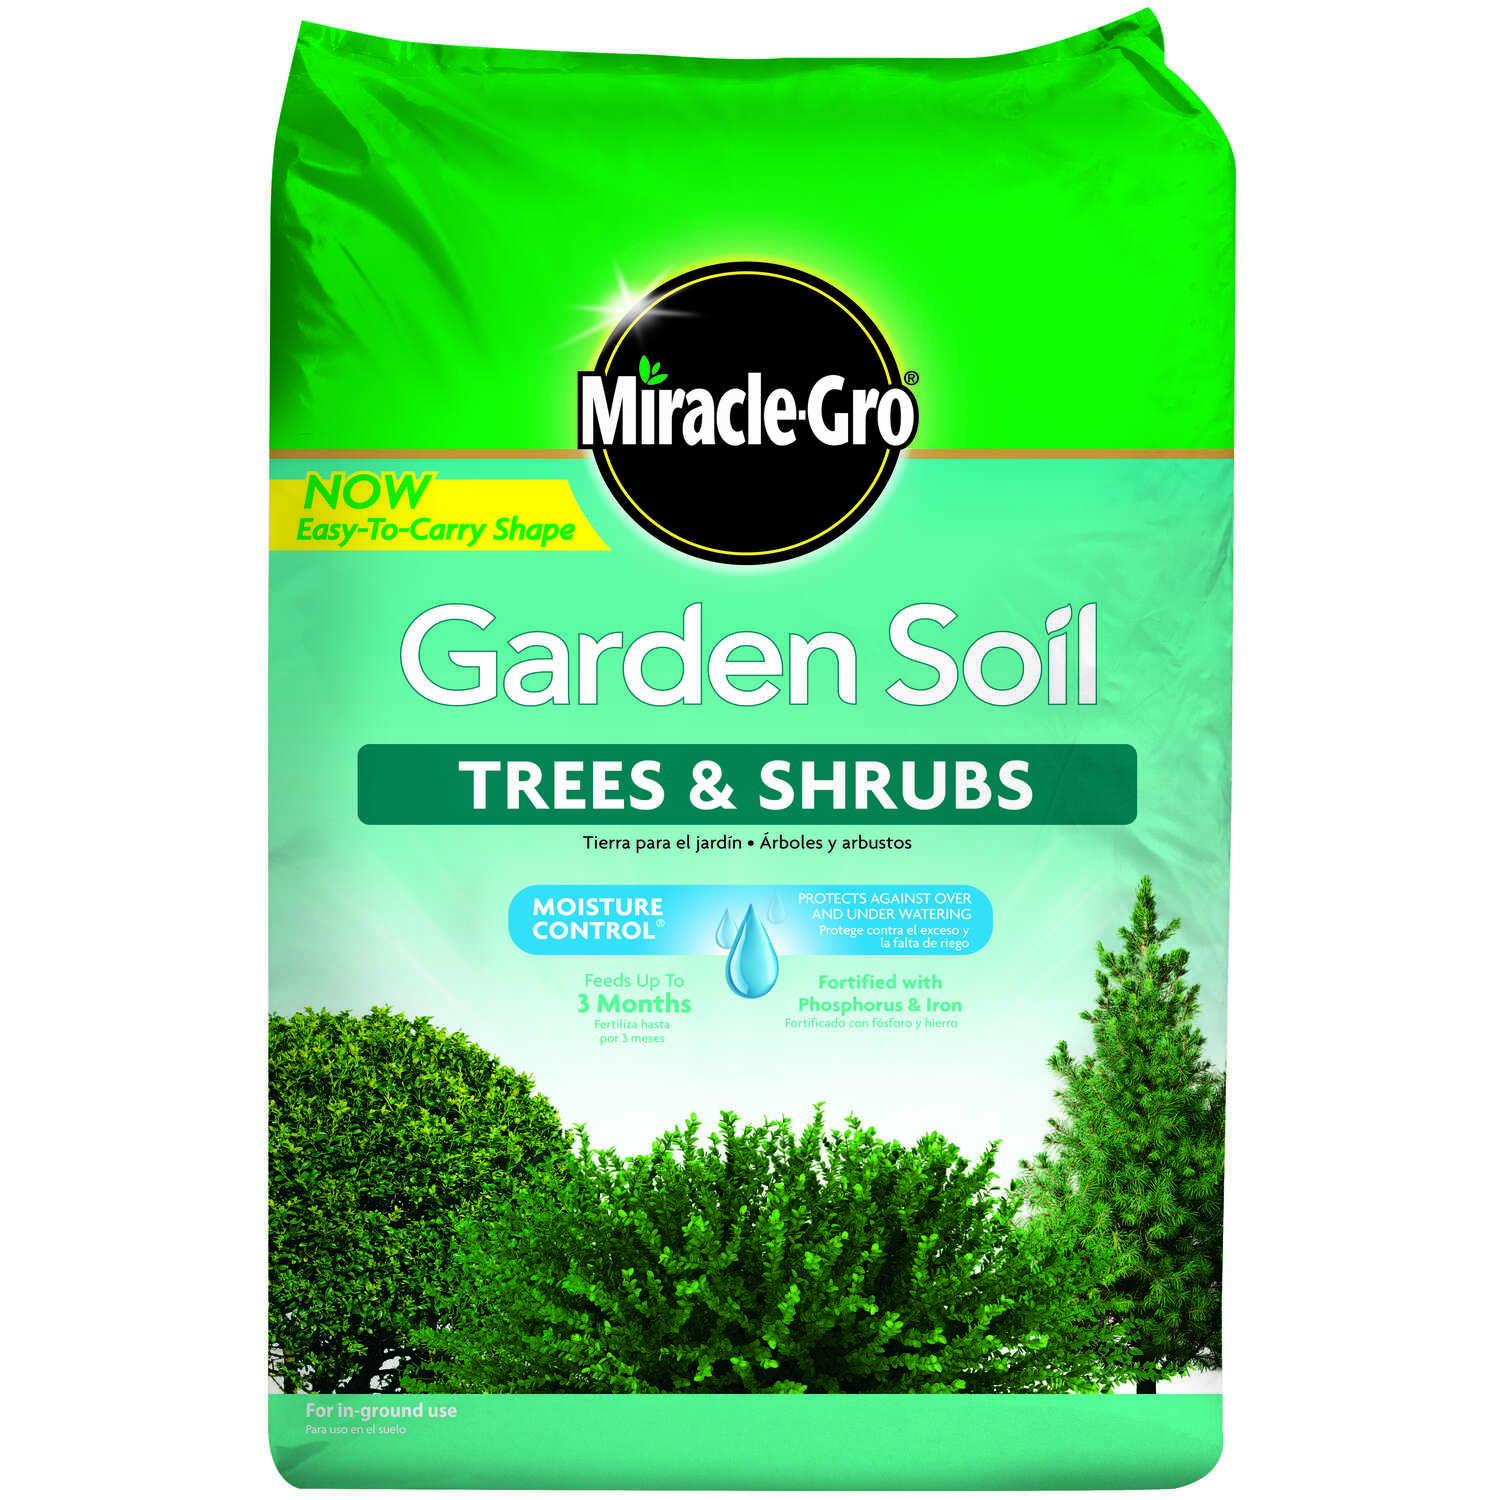 miracle gro tree shrub 15 cu ft garden soil - Miracle Gro Garden Soil